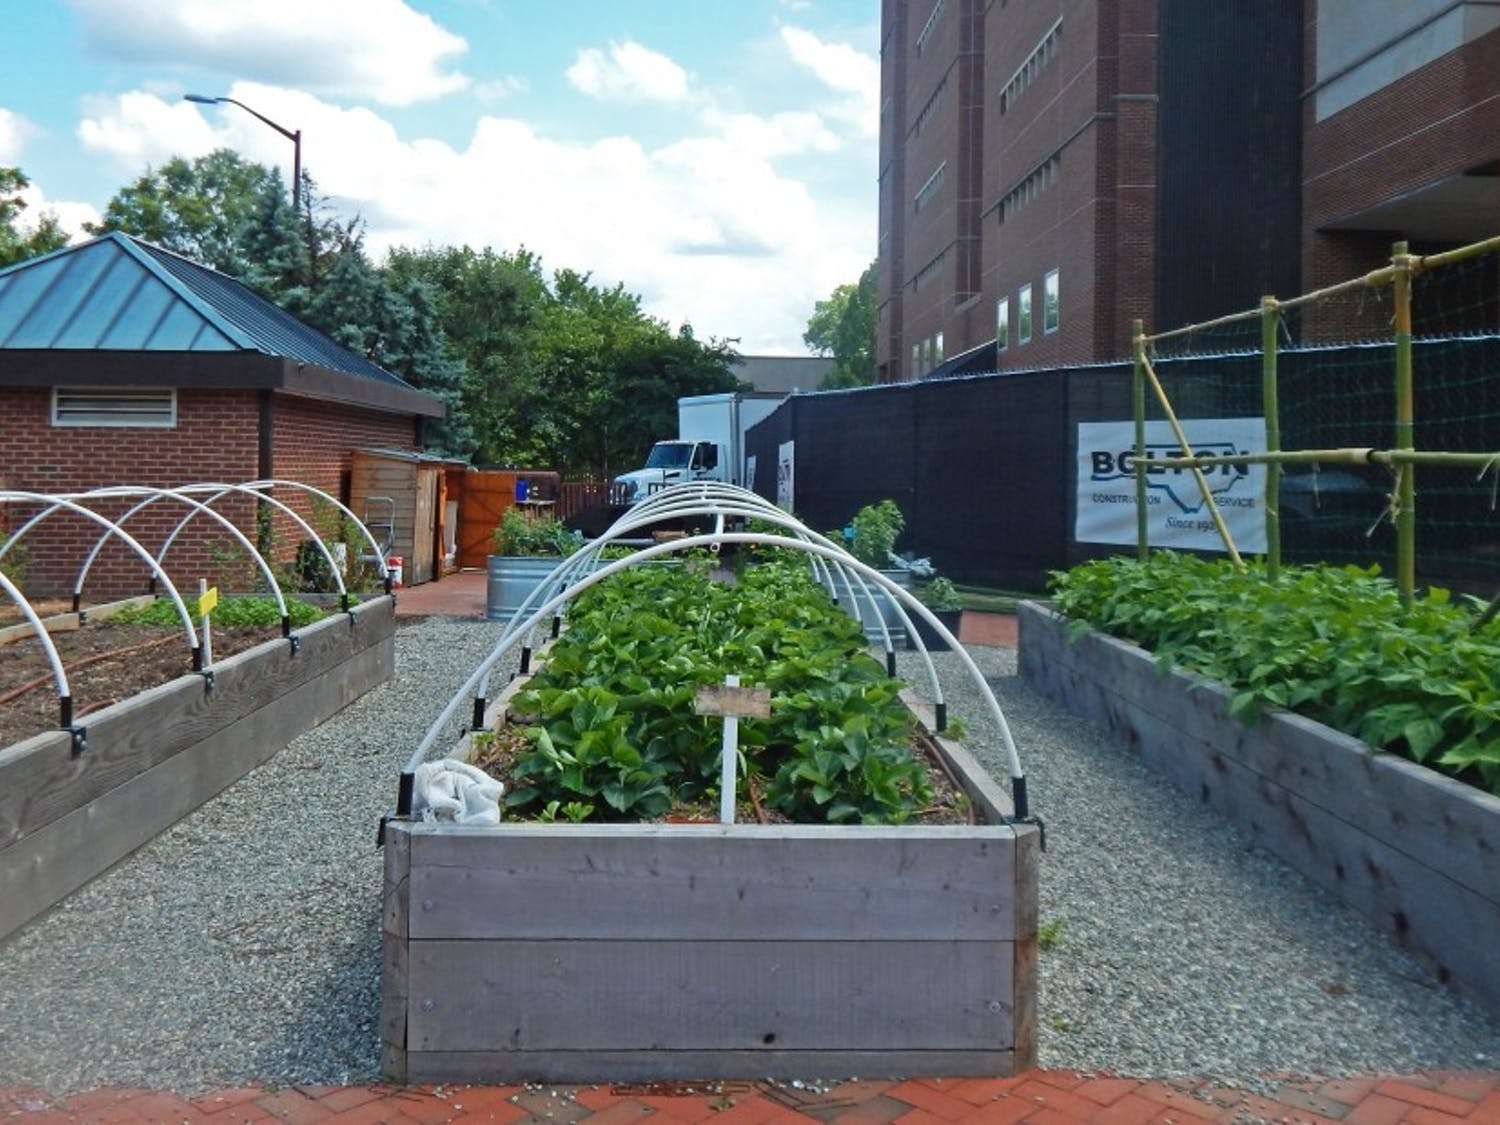 The pilot Edible Campus garden is located behind Davis Library and hosts a number of fruits and vegetables that are ready or nearly ready for harvest, including oregano and chives.